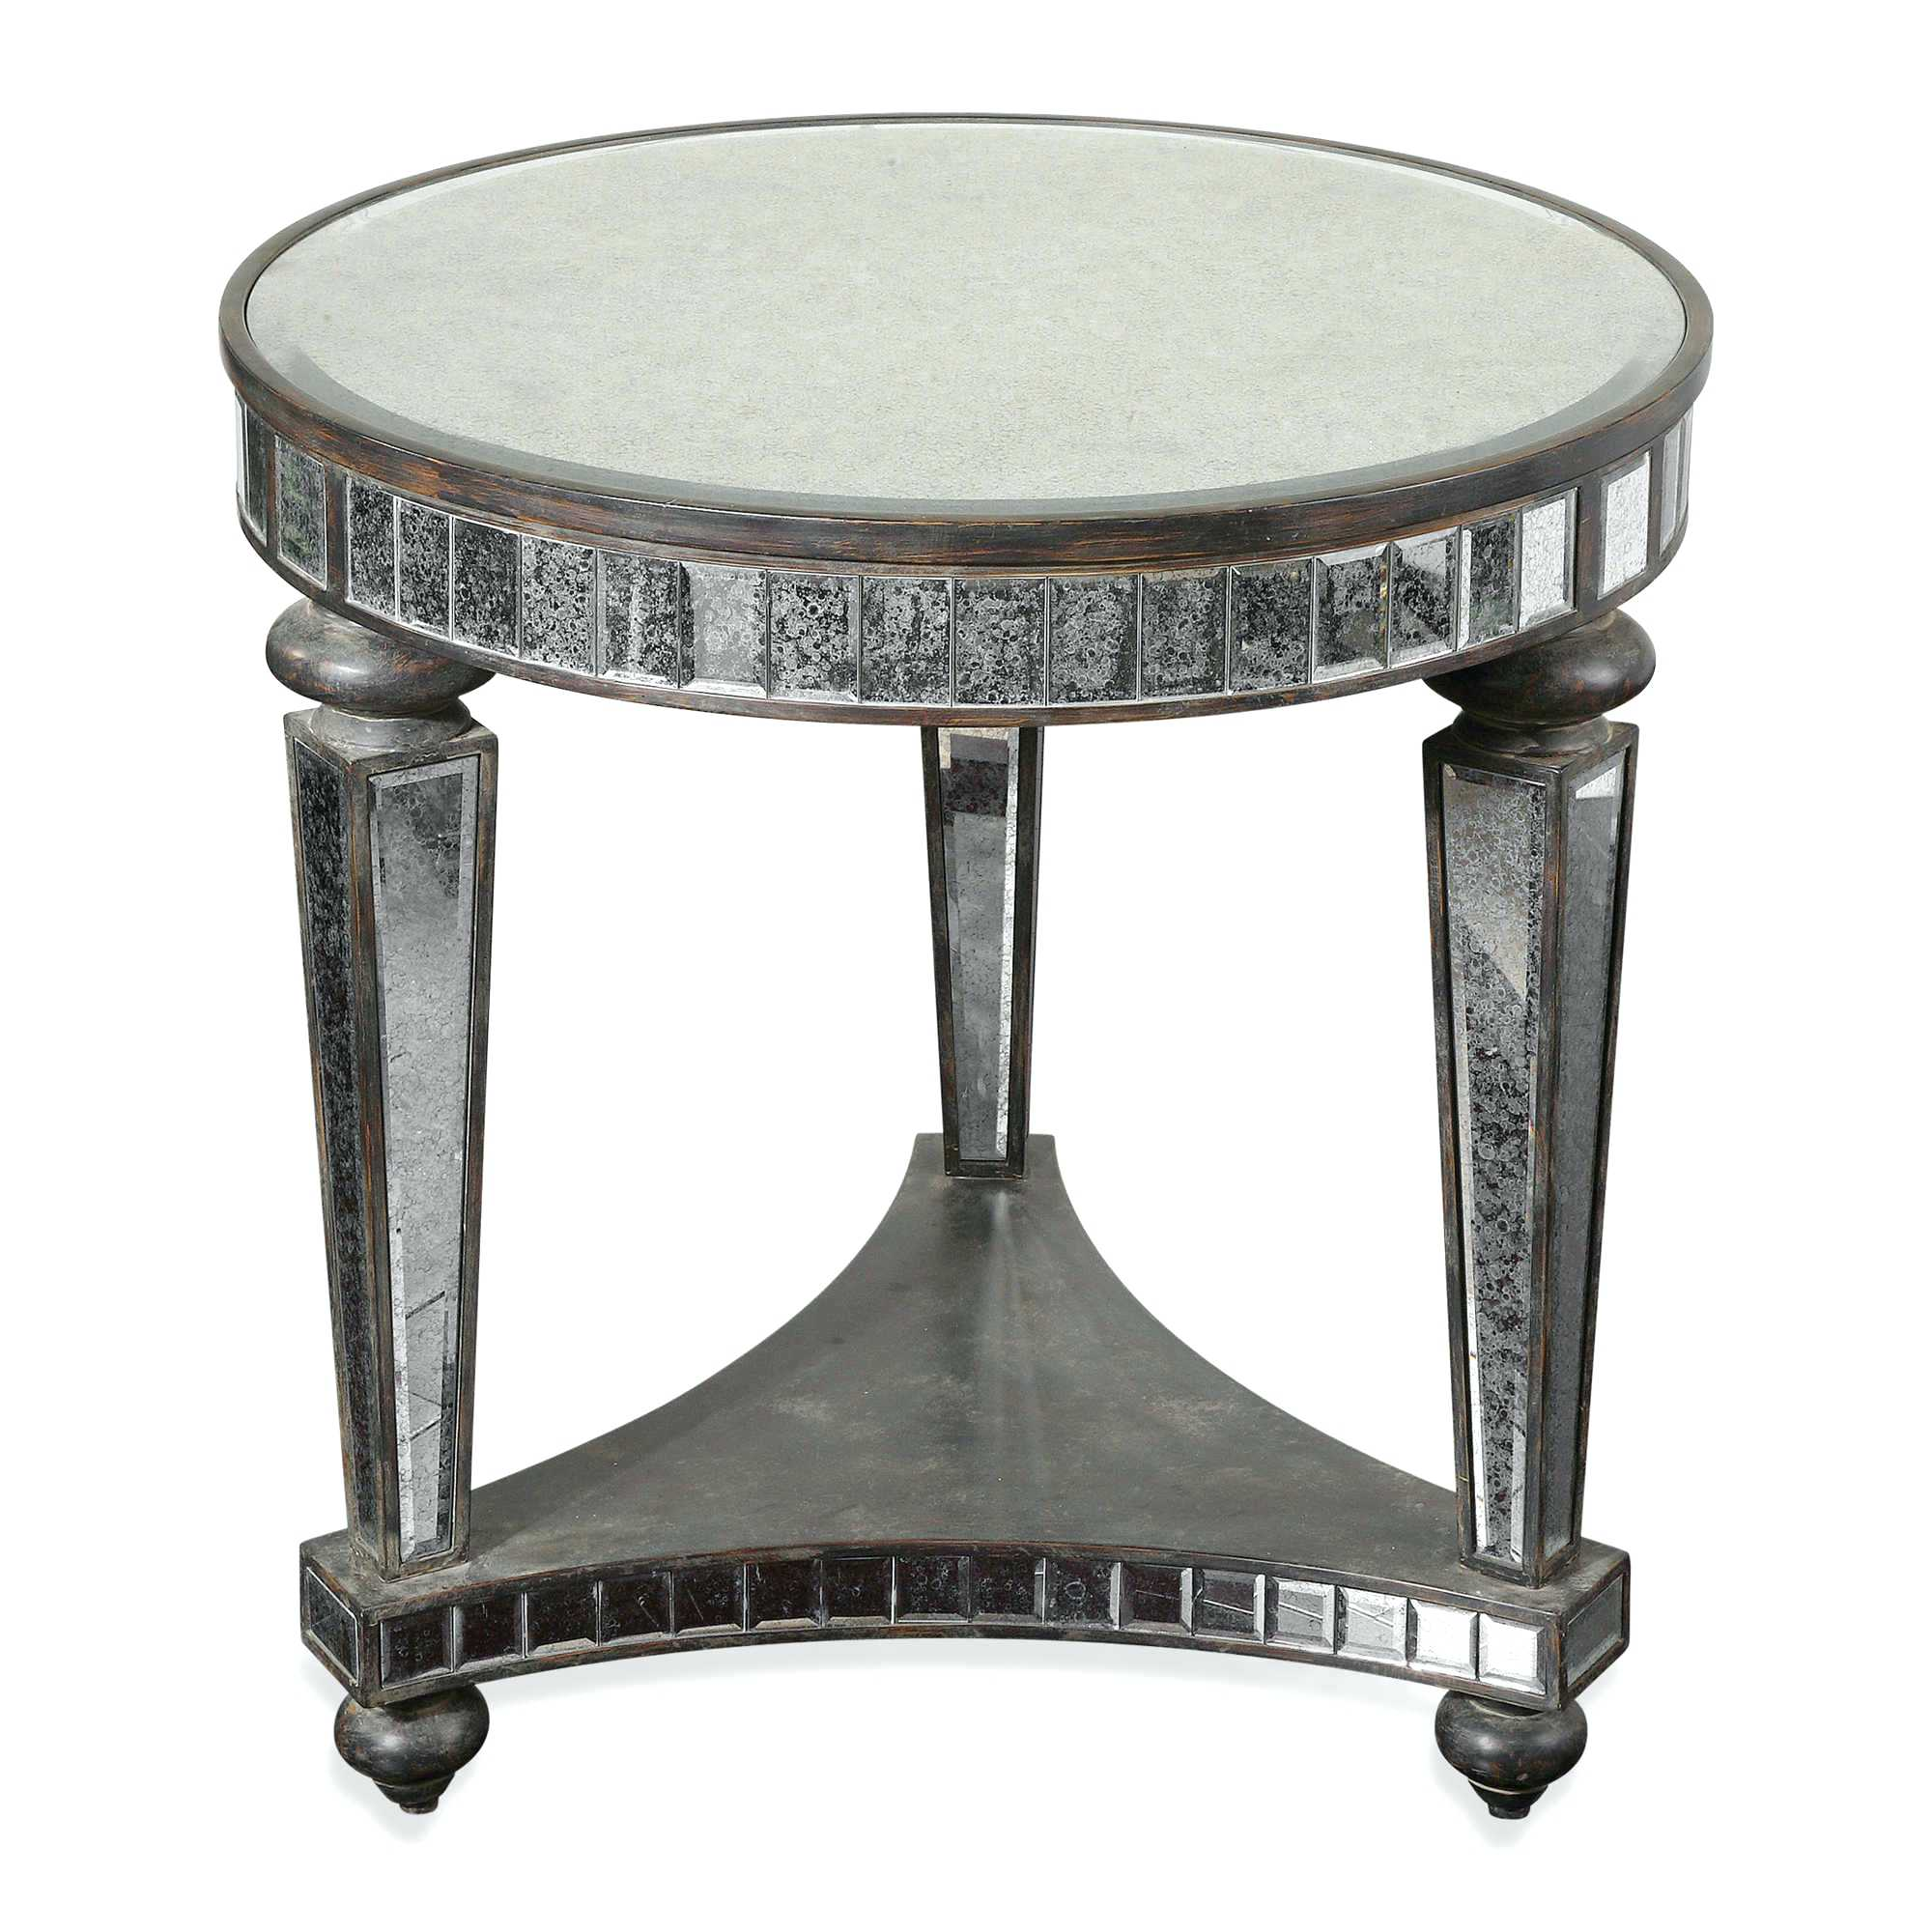 mirror the perfect beautiful behind nightstand ideas side table ceramic drum artisan made dark bronze tables gallery marvelous industrial rustic rolled metal accent home gold